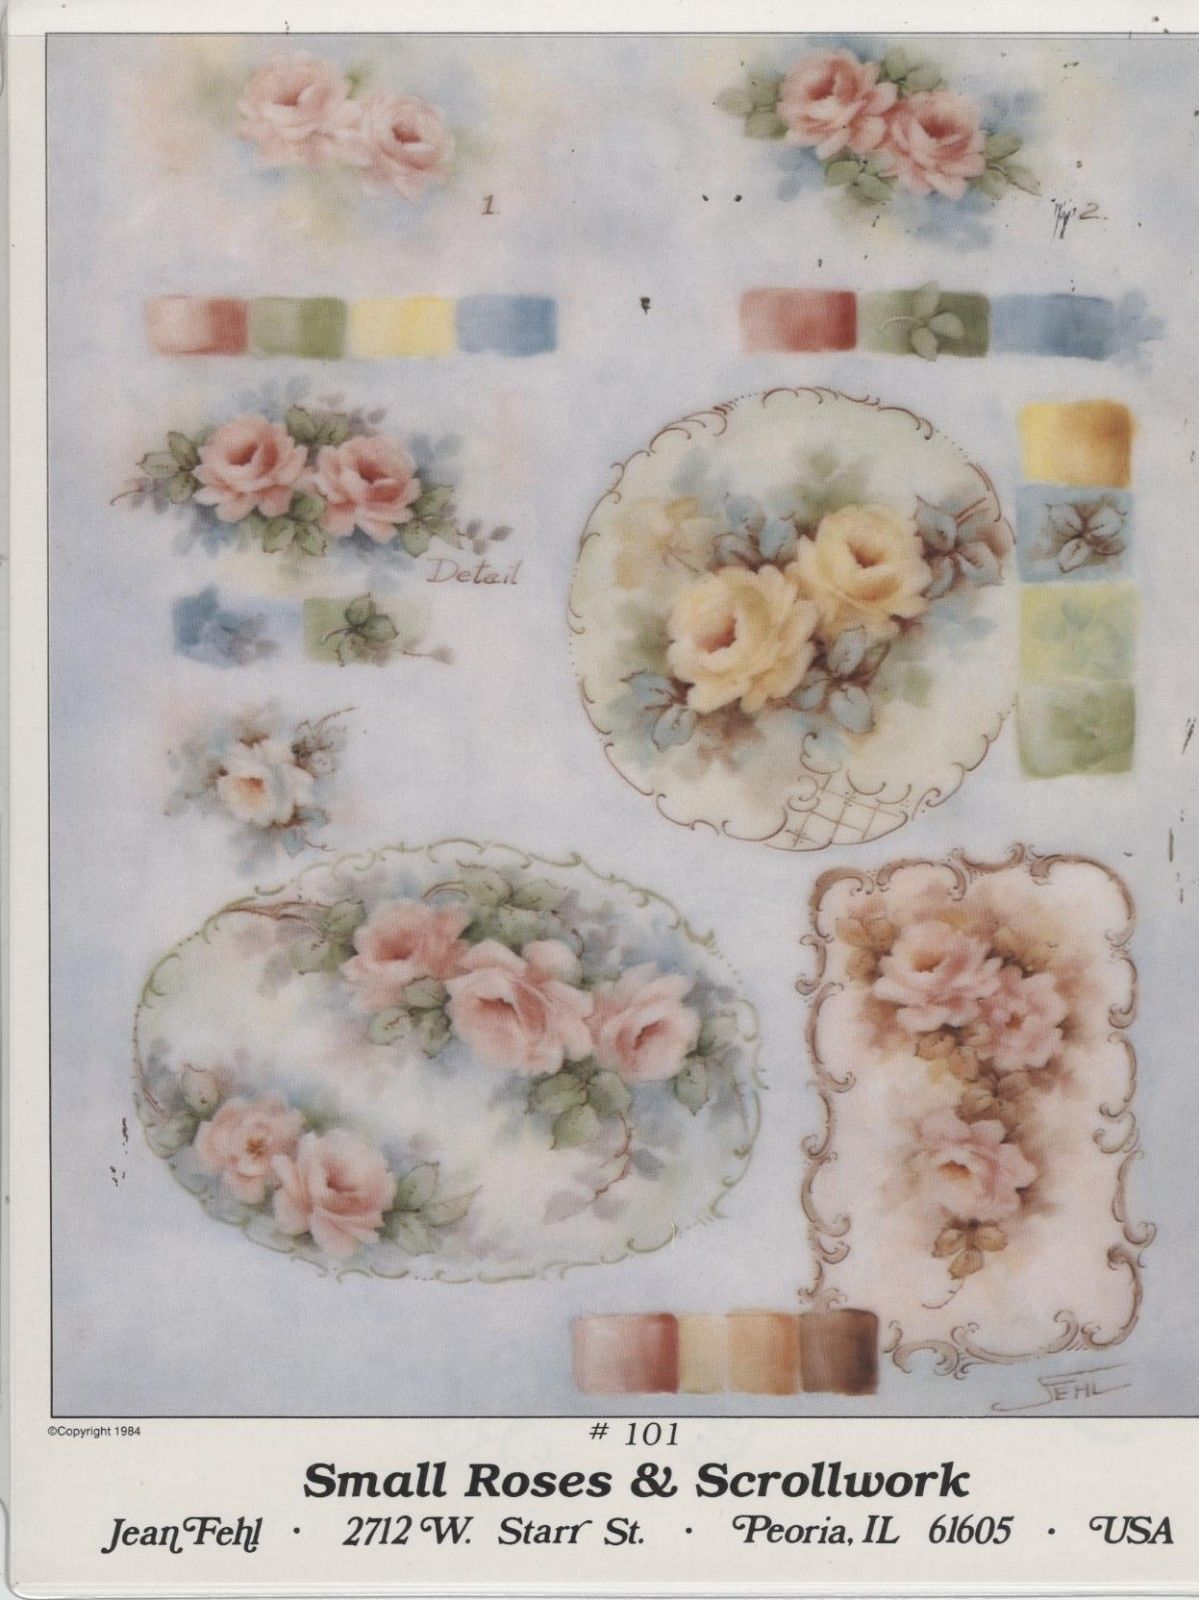 Small Roses Scrollwork 101 by Jean Fehl China Painting Study 1984 | eBay